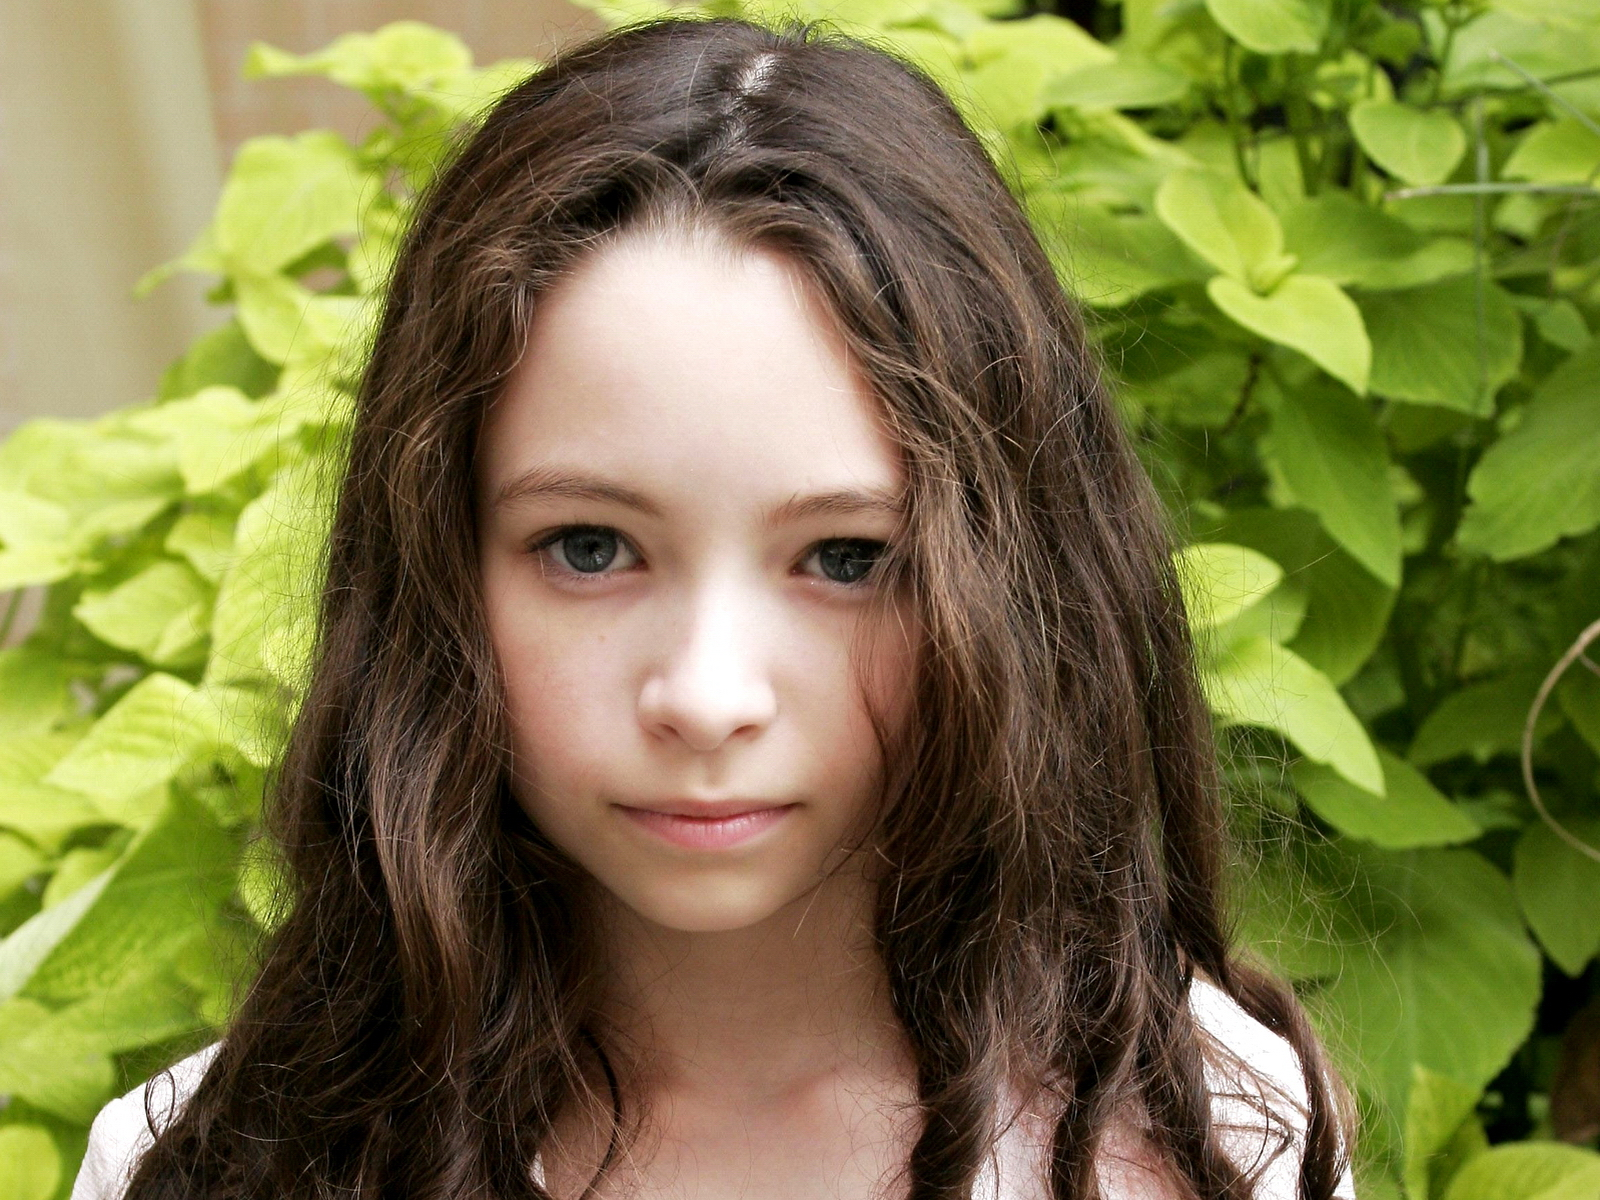 jodelle ferland silent hilljodelle ferland age, jodelle ferland 2015, jodelle ferland movies, jodelle ferland imdb, jodelle ferland twilight, jodelle ferland instagram, jodelle ferland tumblr, jodelle ferland twitter, jodelle ferland fansite, jodelle ferland case 39, jodelle ferland images, jodelle ferland silent hill, jodelle ferland gif, jodelle ferland vine, jodelle ferland facebook, jodelle ferland bio, jodelle ferland photos, jodelle ferland 2015 bikini, jodelle ferland blue hair, jodelle ferland reddit